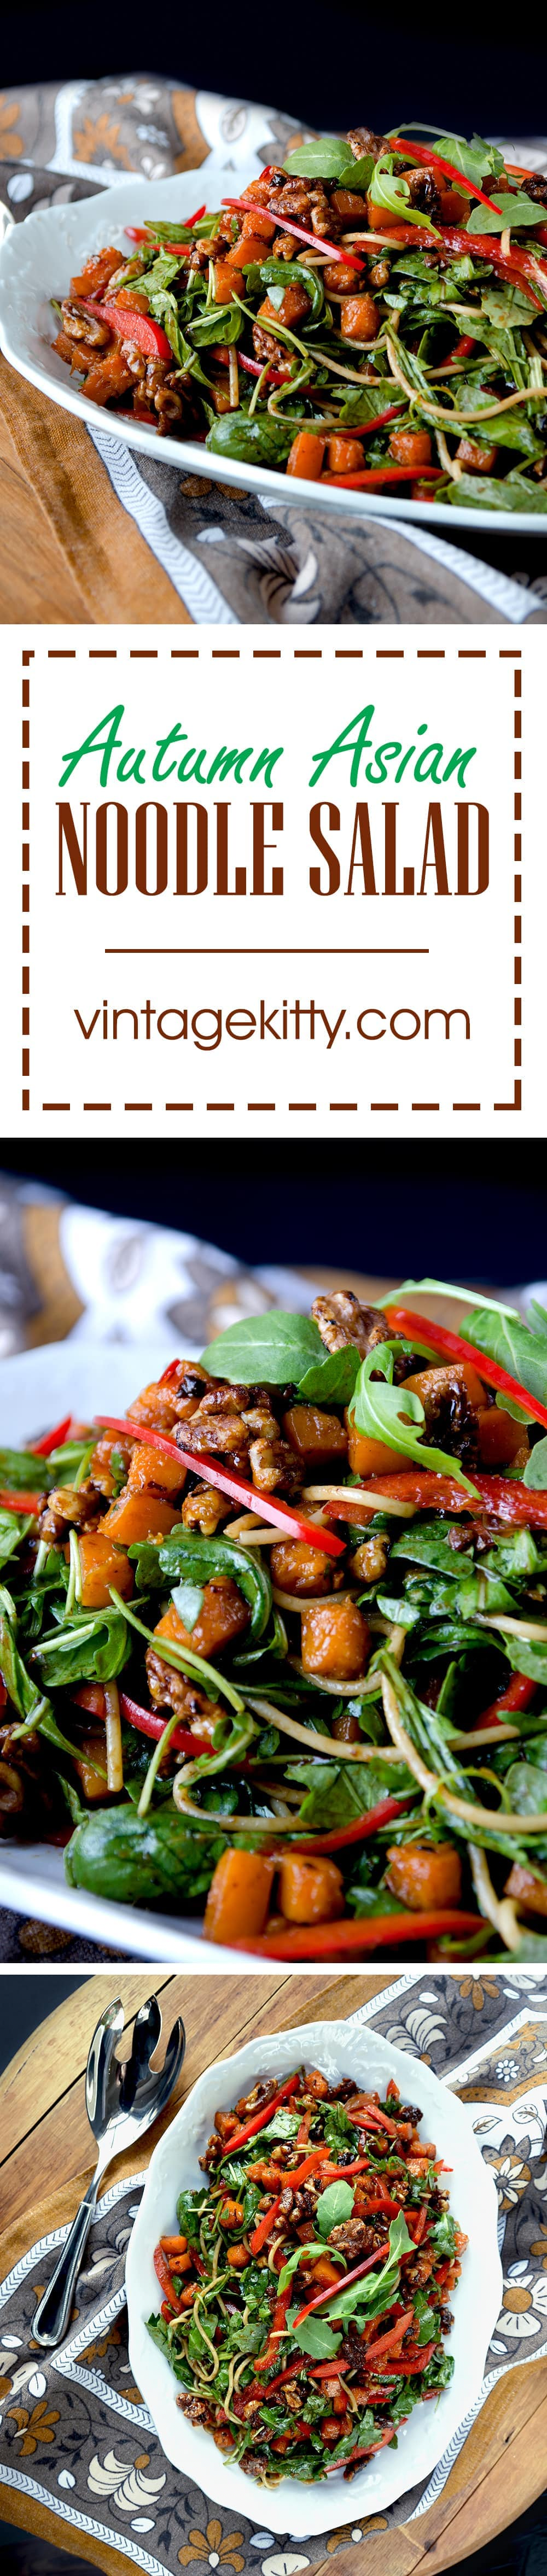 Autumn Asian Noodle Salad is a delicious cold dish that brings freshness and crunch to your holiday table. Candied butternut squash, walnuts, baby arugula, and sweet bell peppers top noodles coated in a black bean dressing. | vintagekitty.com